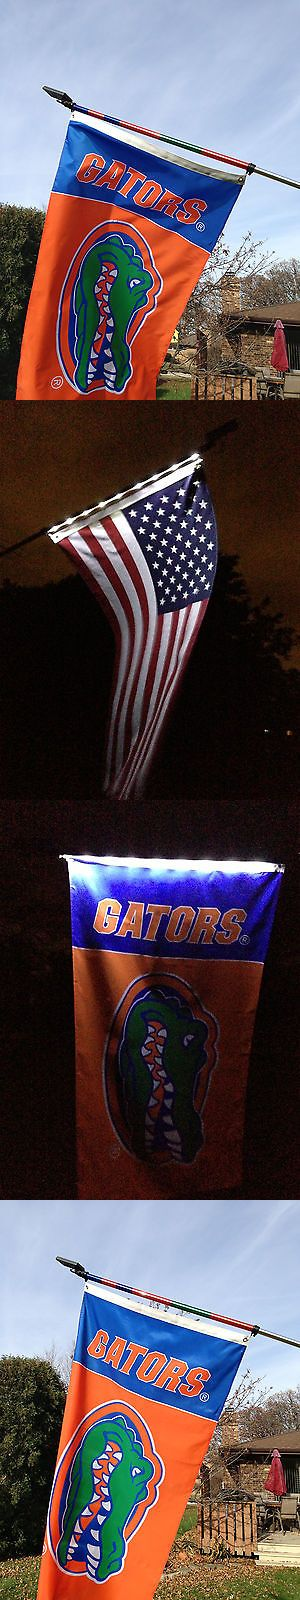 Jerseys 60597: University Of Florida Flag With A Solar Powered Flagpole ( Includes U.S. Flag ) -> BUY IT NOW ONLY: $69.99 on eBay!